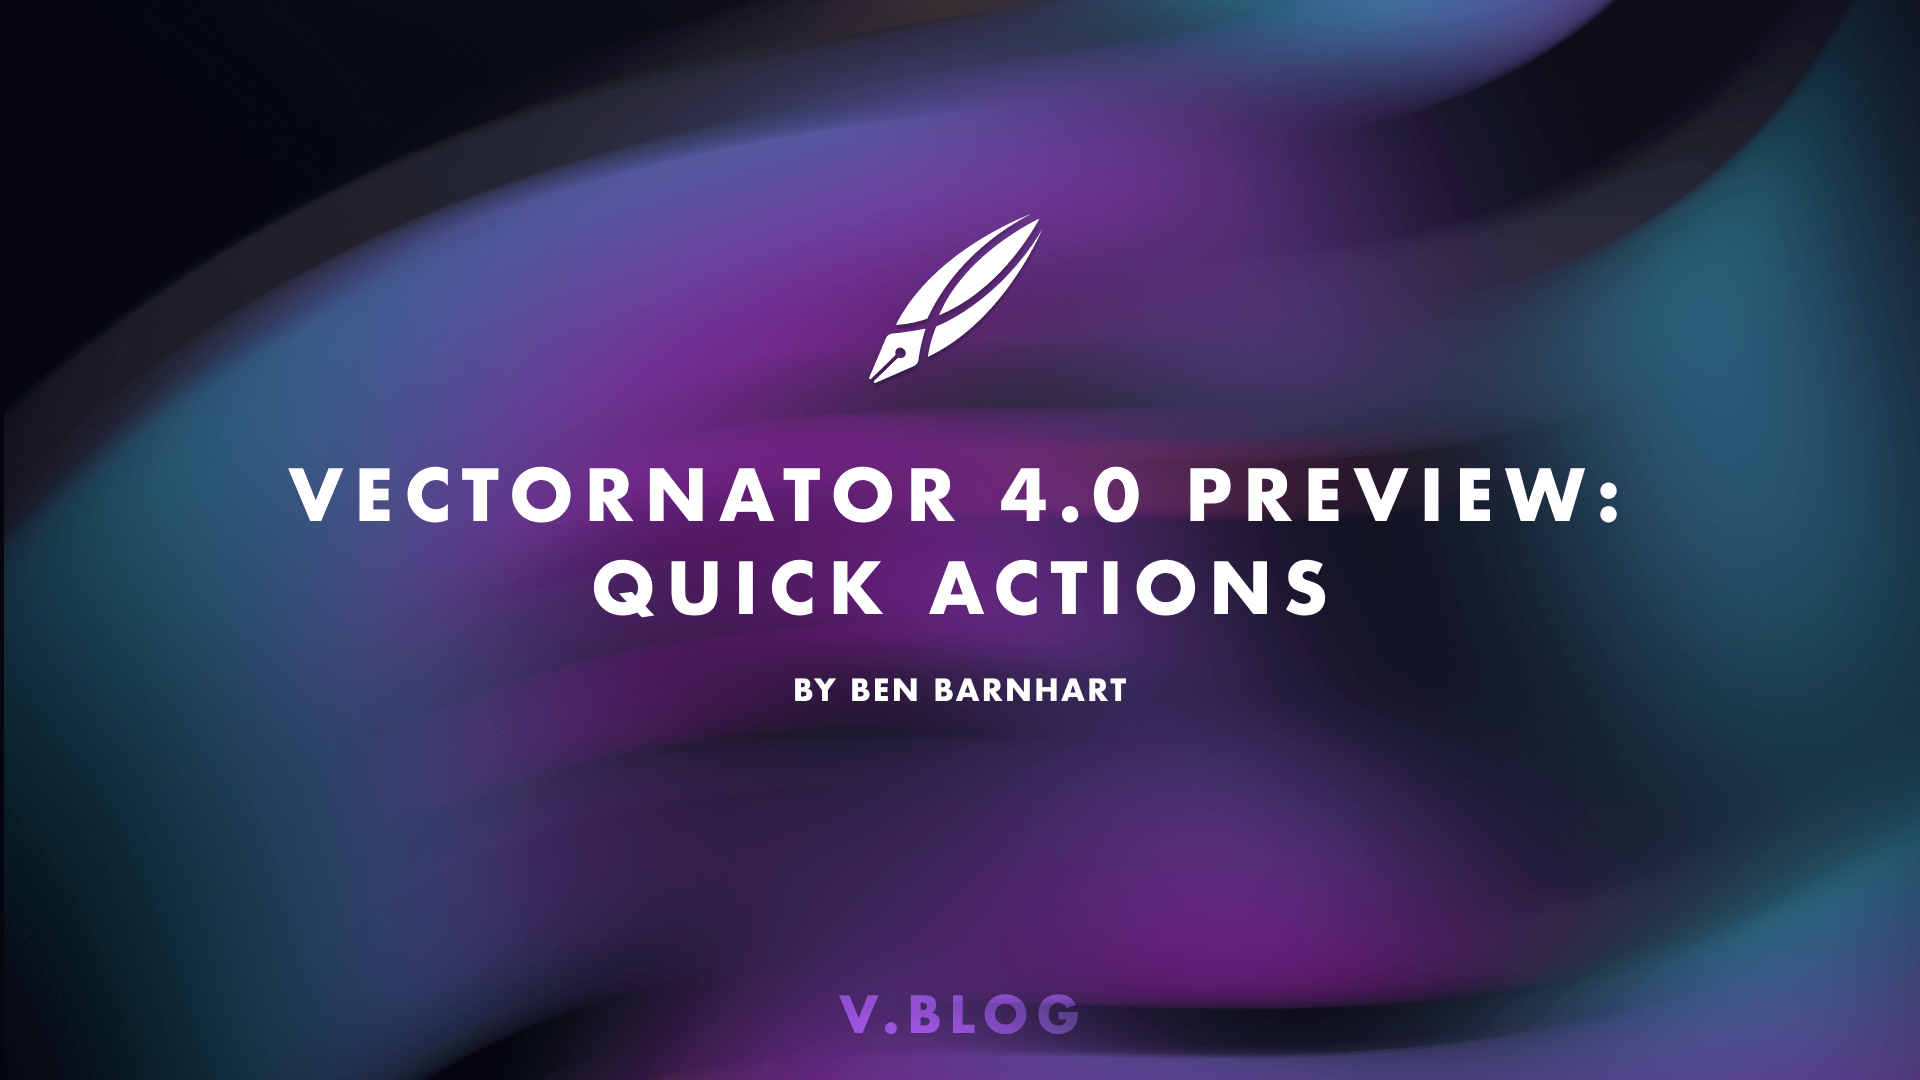 Vectornator 4.0 Preview: Quick Actions